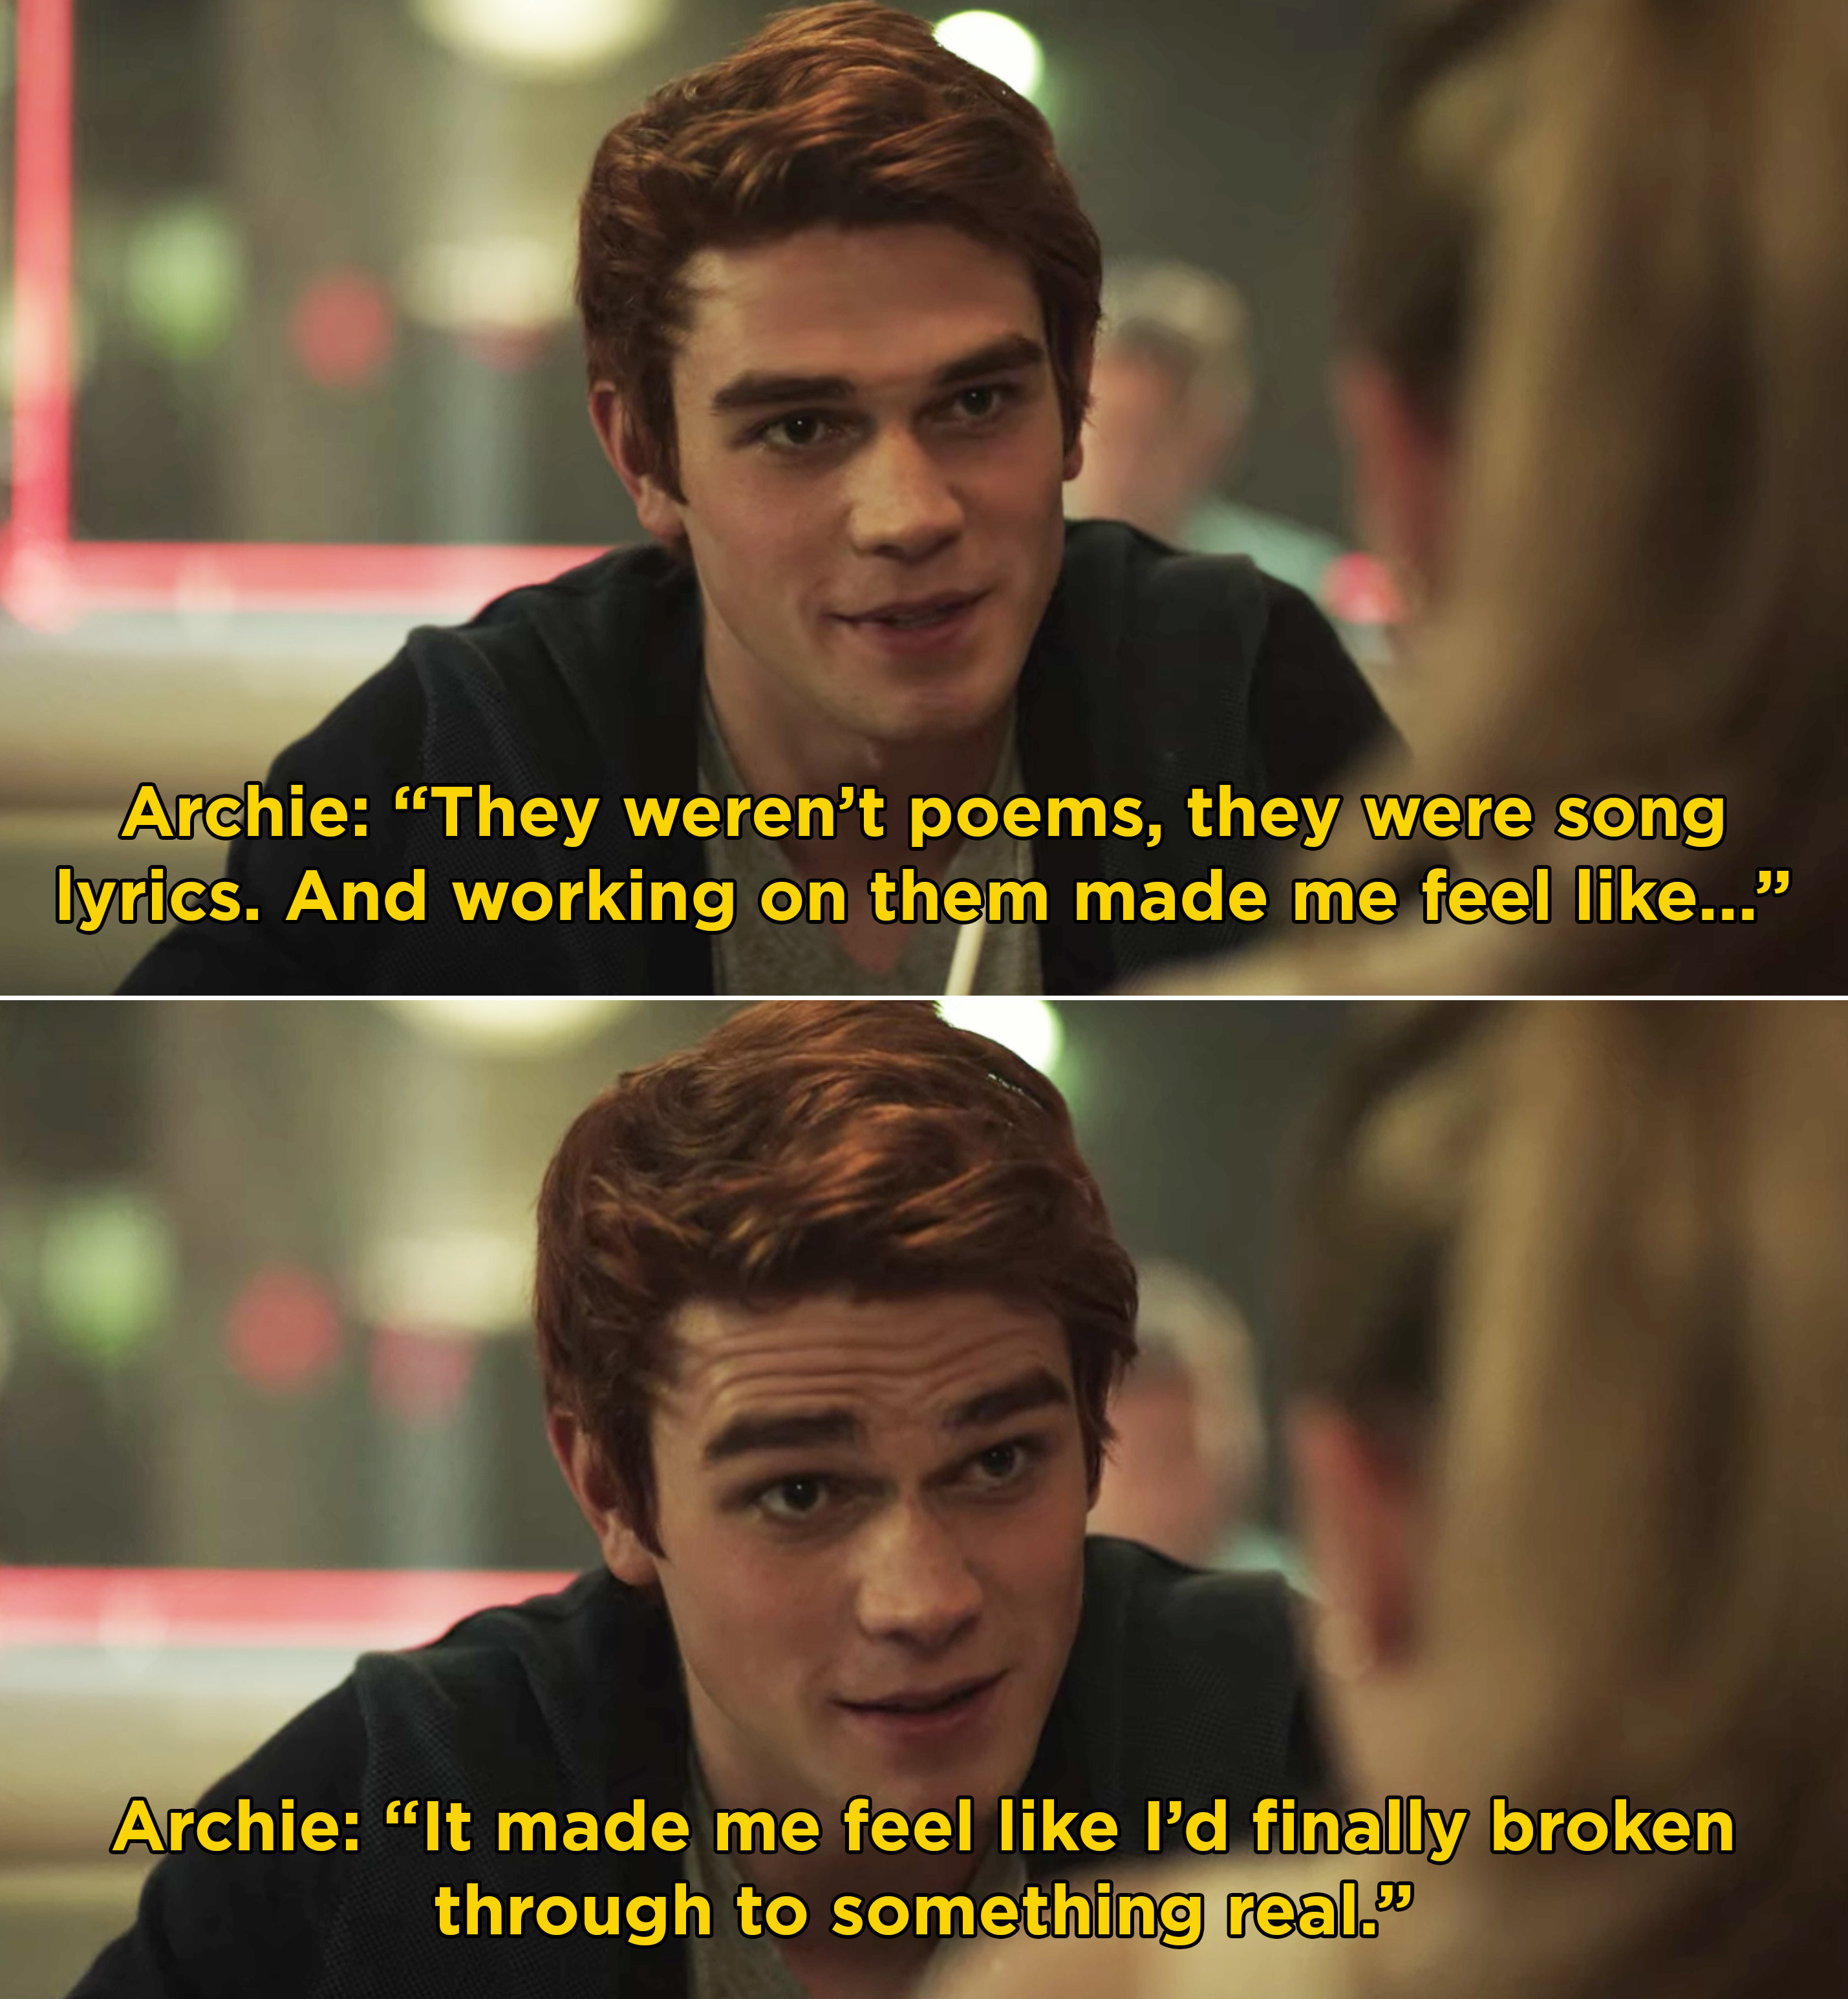 Archie telling Betty about writing song lyrics for the first and how they make him feel great